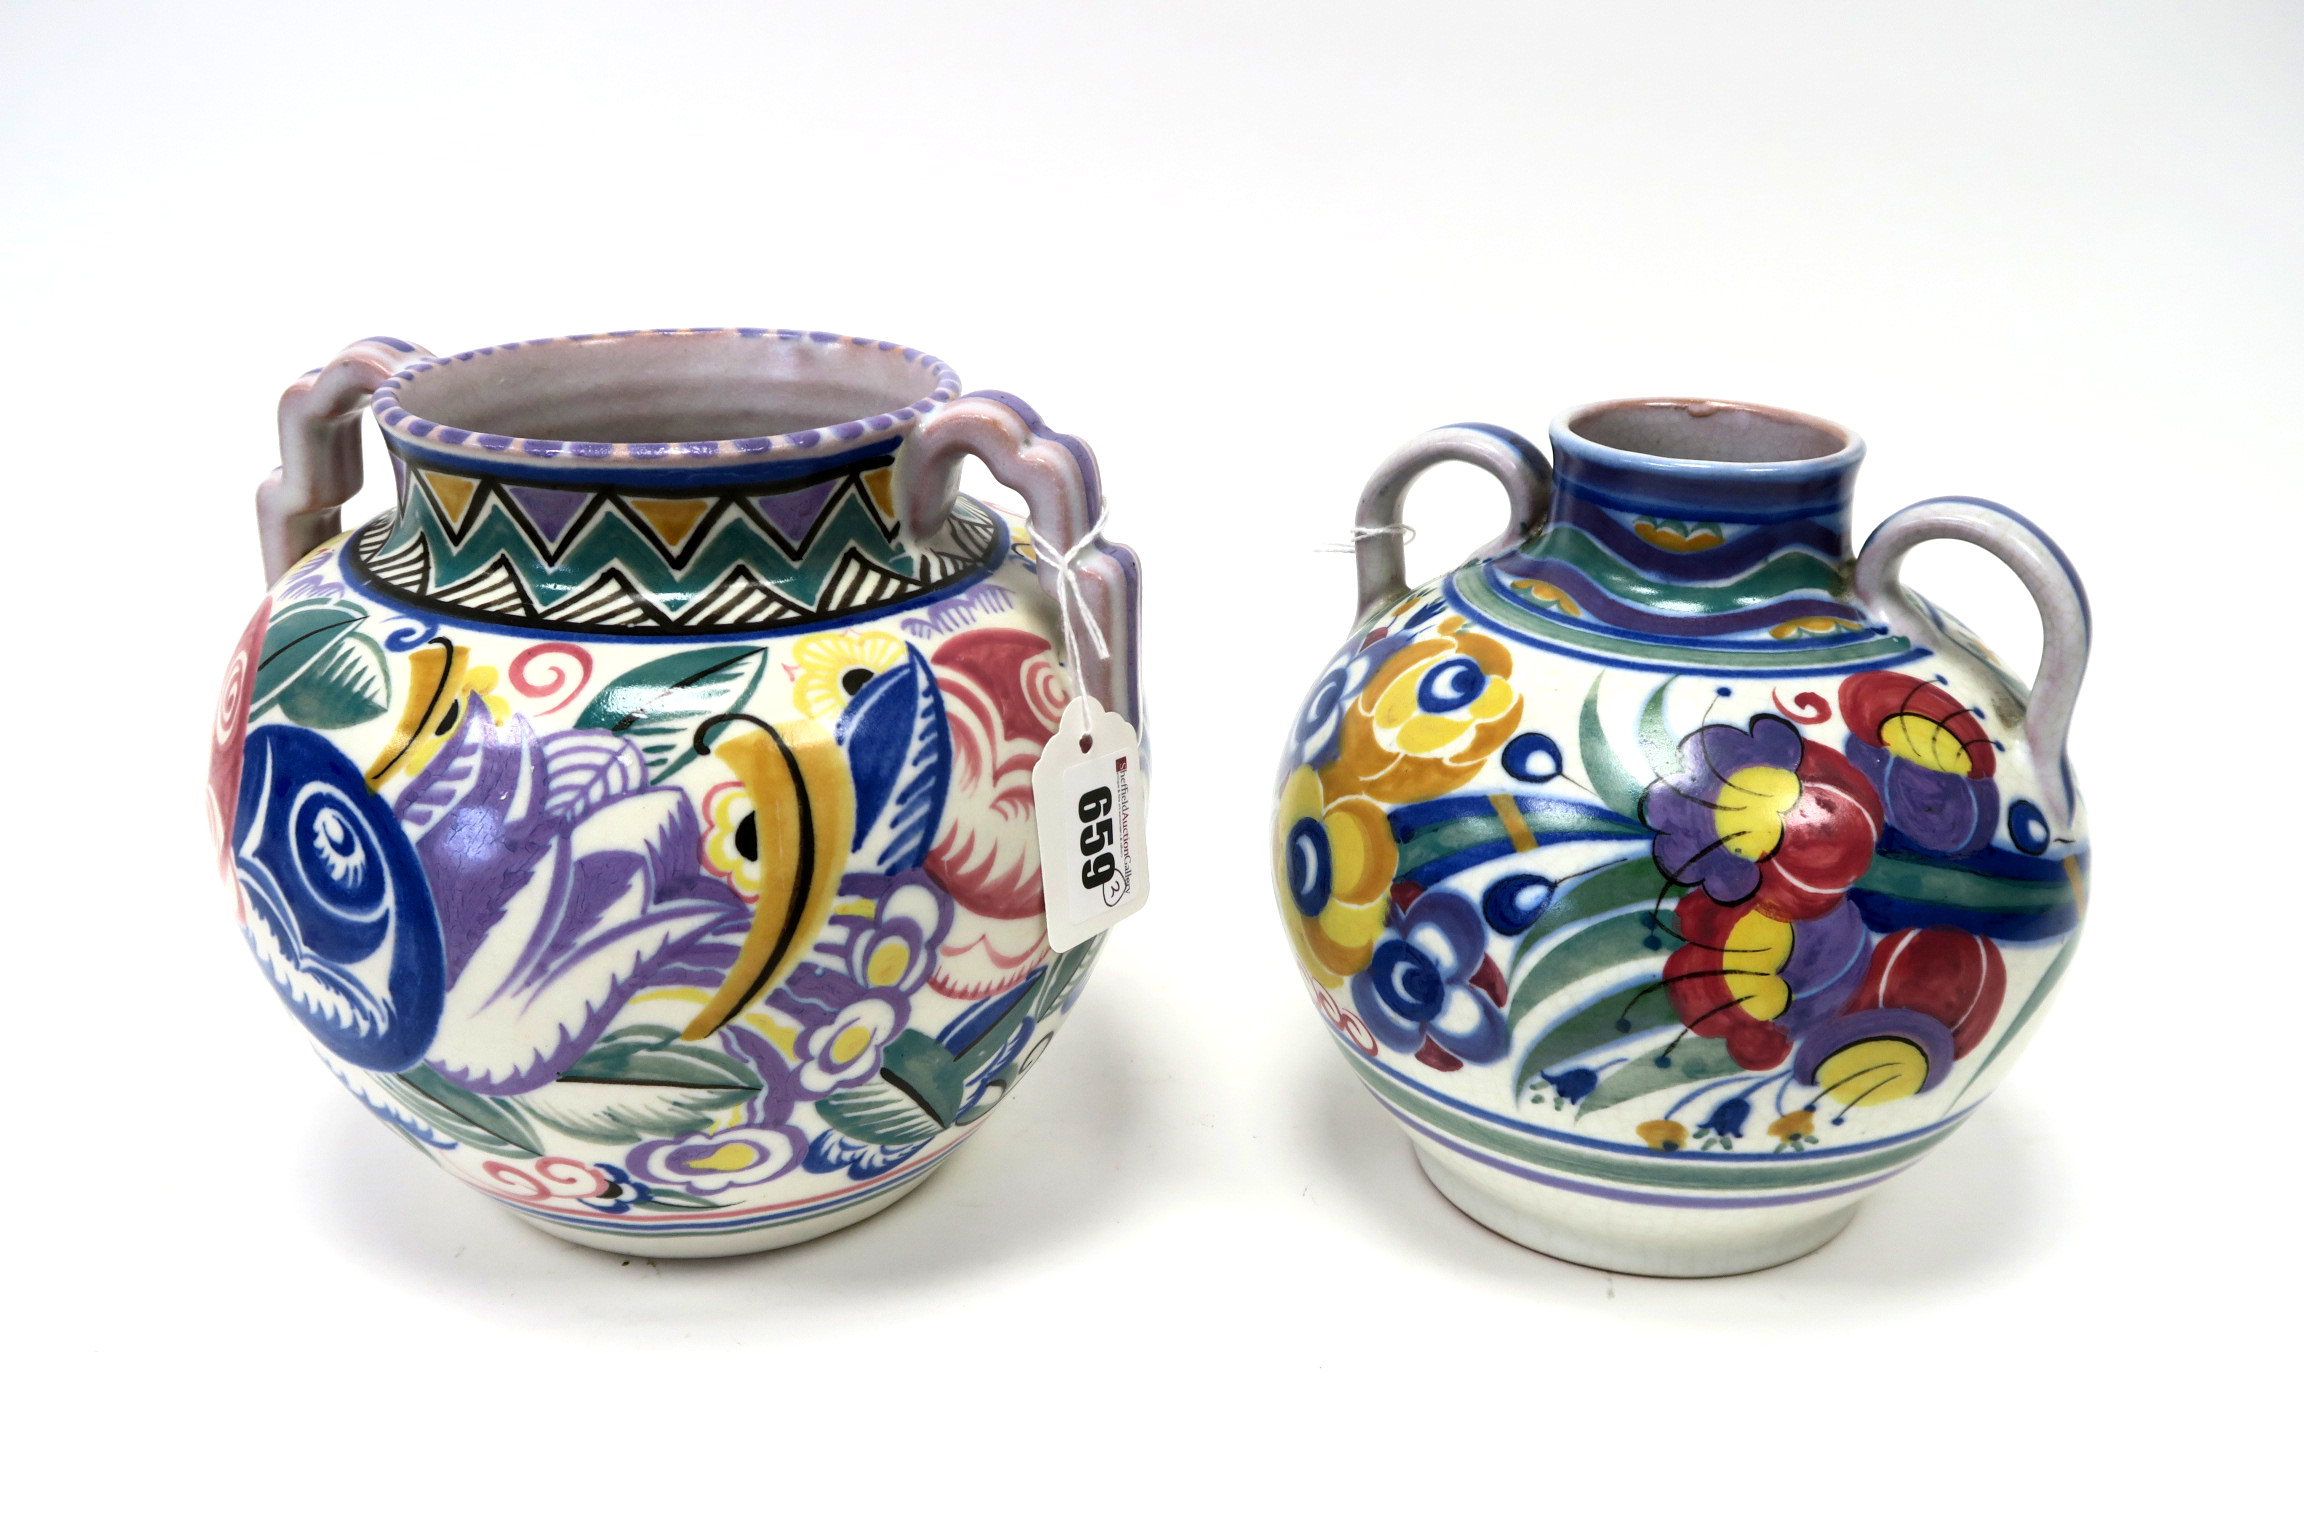 Lot 659 - A Carter, Stabler and Adams Poole Pottery Red Earthenware Two Handled Vase, of ovoid form, painted